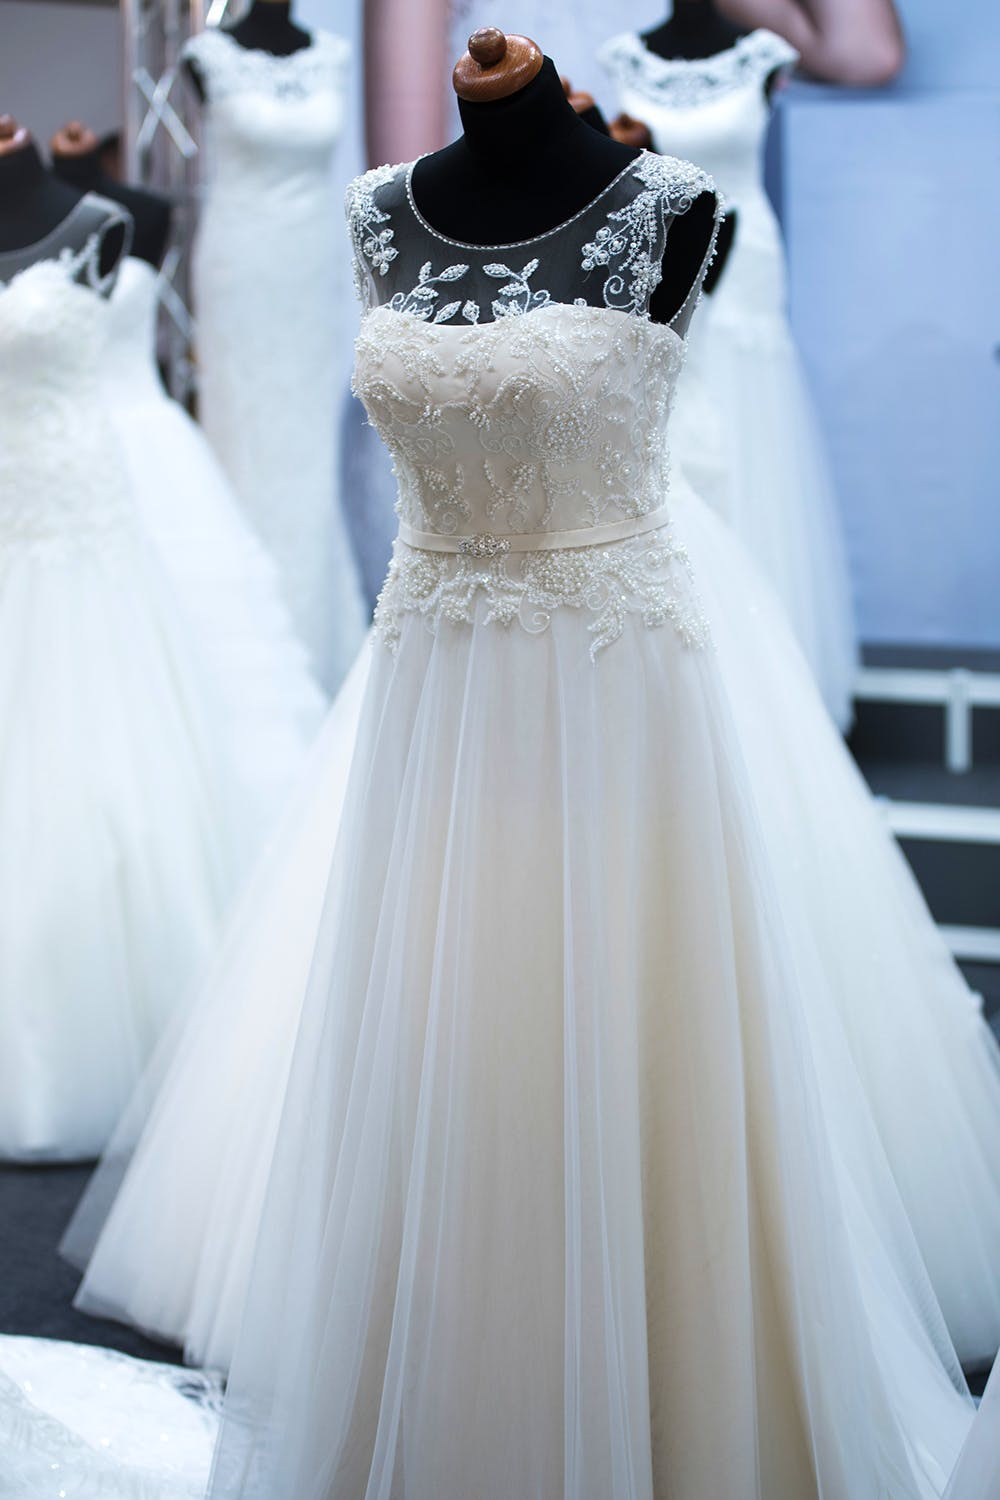 image - Walk Down The Aisle In A White Wedding Gown & Be The Bride Of Your Dreams